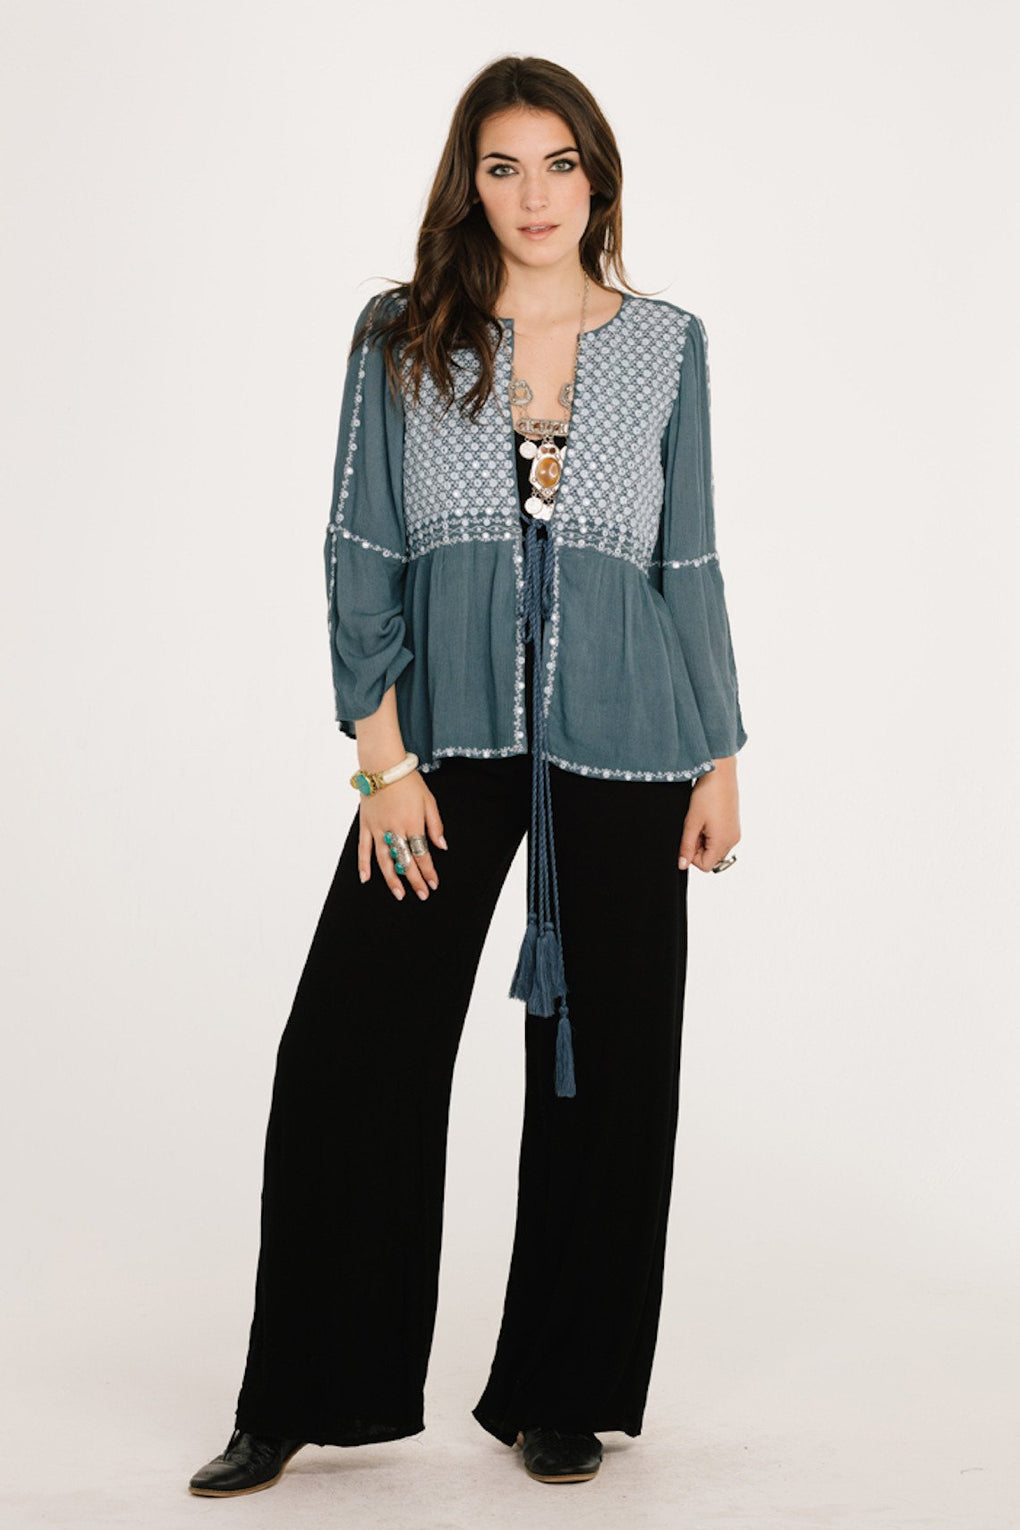 Mirror Mirror Tie Jacket - Danish Fashion & Living Online Store SALE